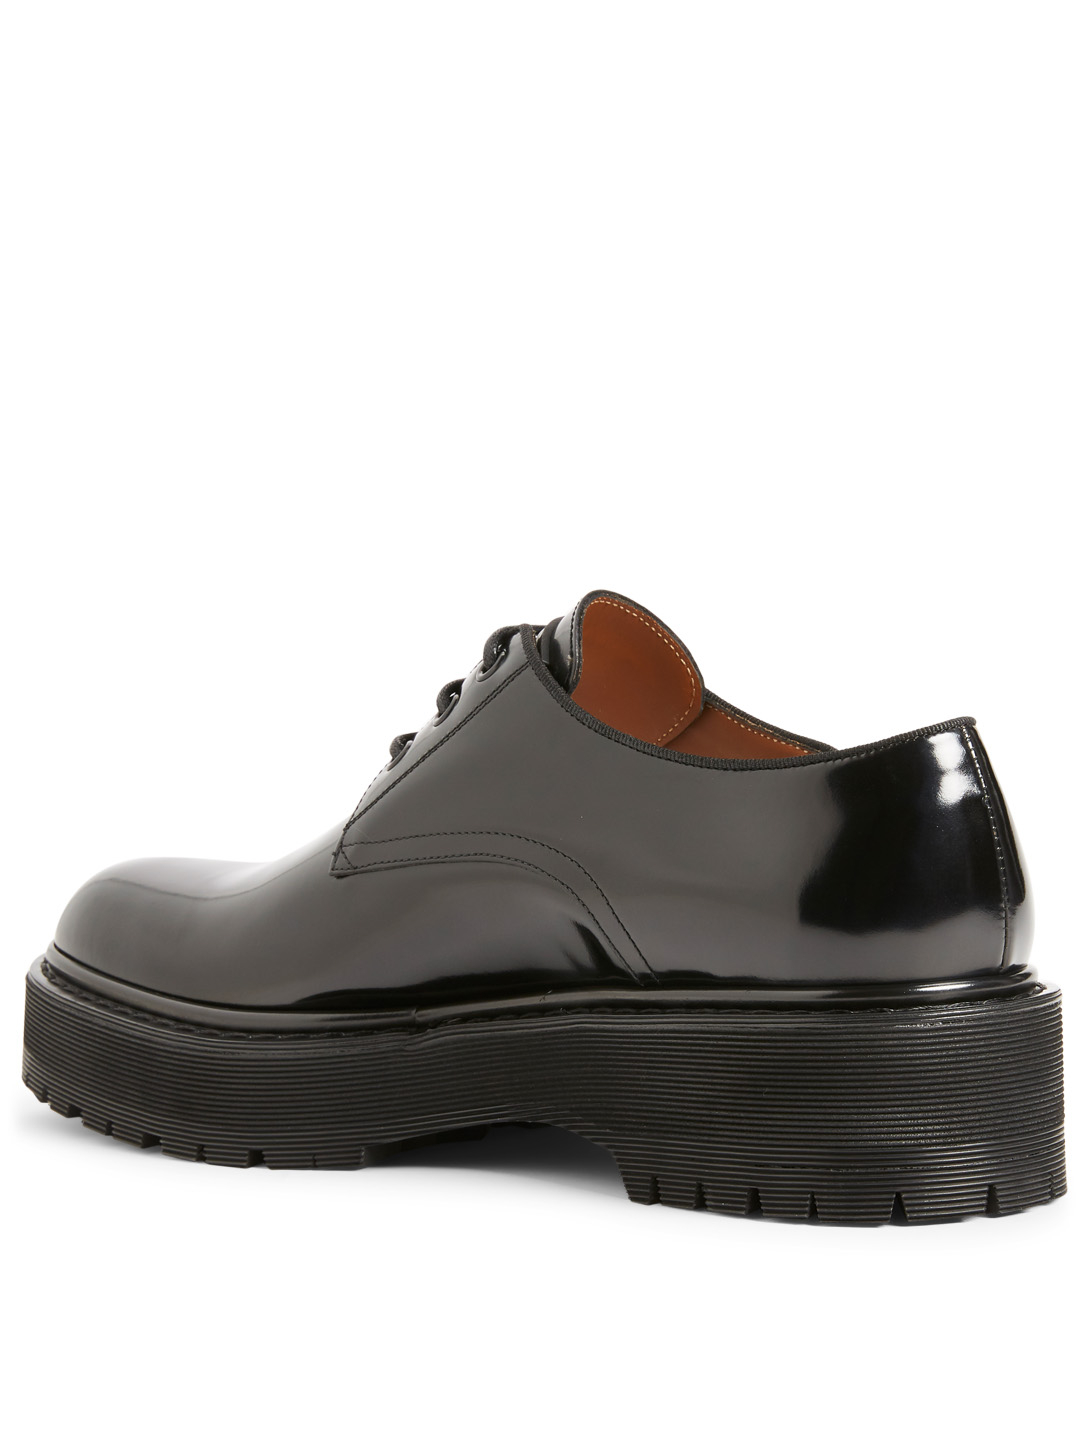 GIVENCHY Camden Utility Leather Derby Shoes Men's Black